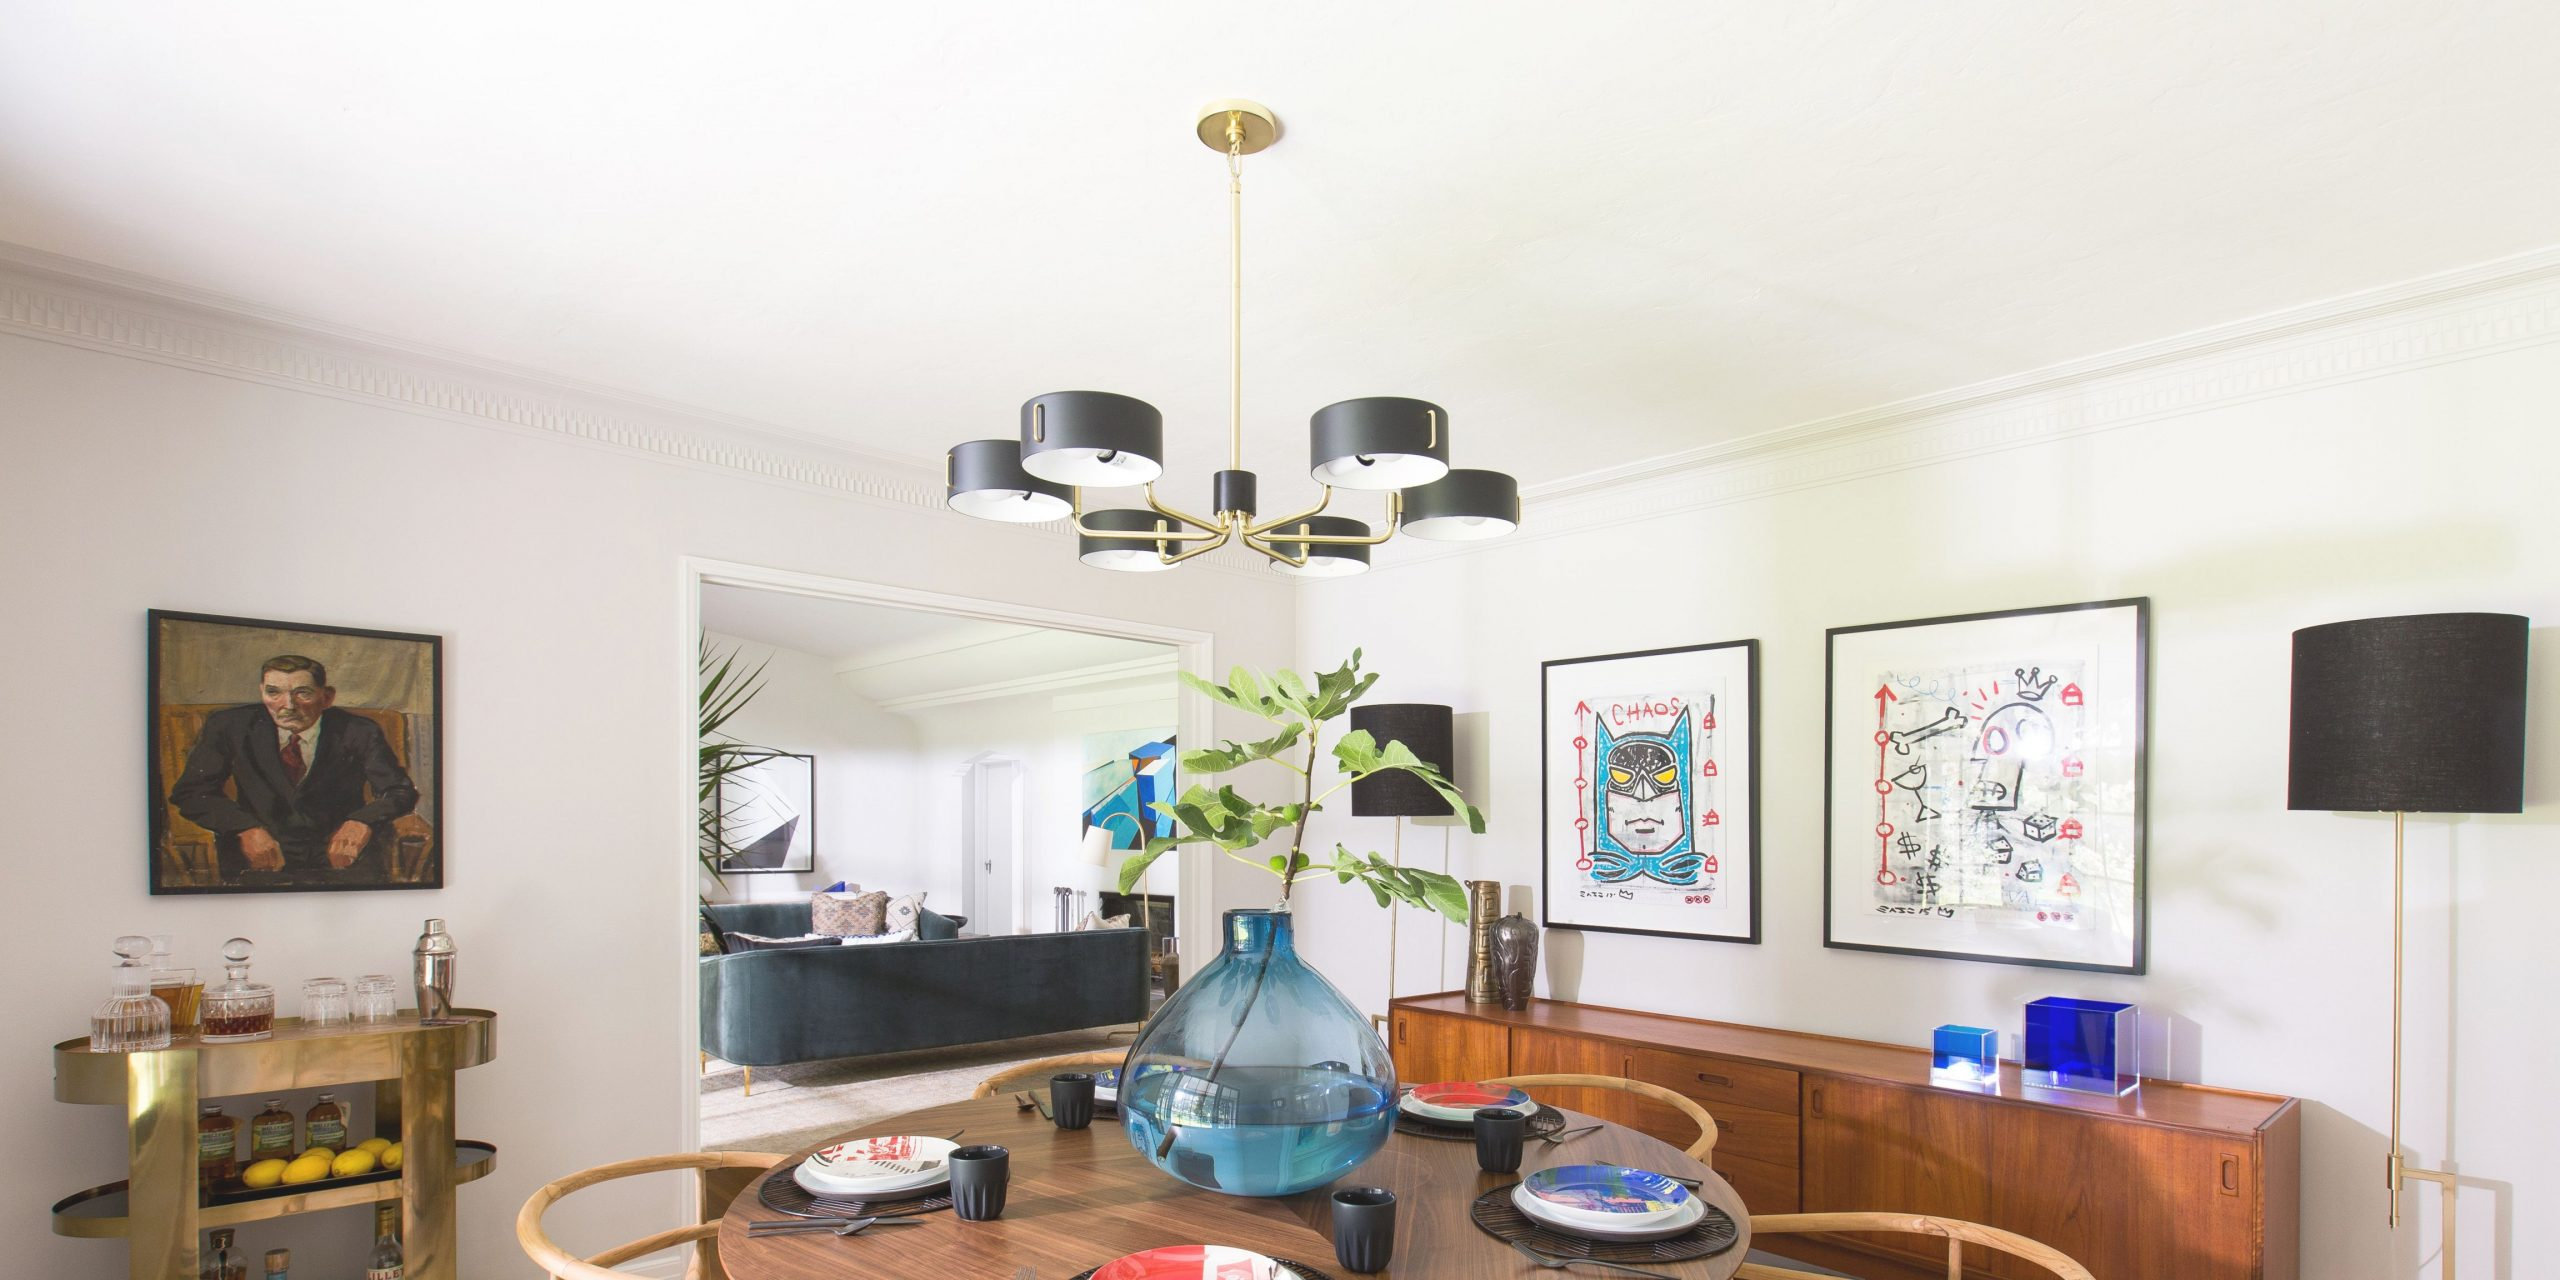 8 Midcentury Modern Decor & Style Ideas: Tips For Interior within Hunting Decor For Living Room